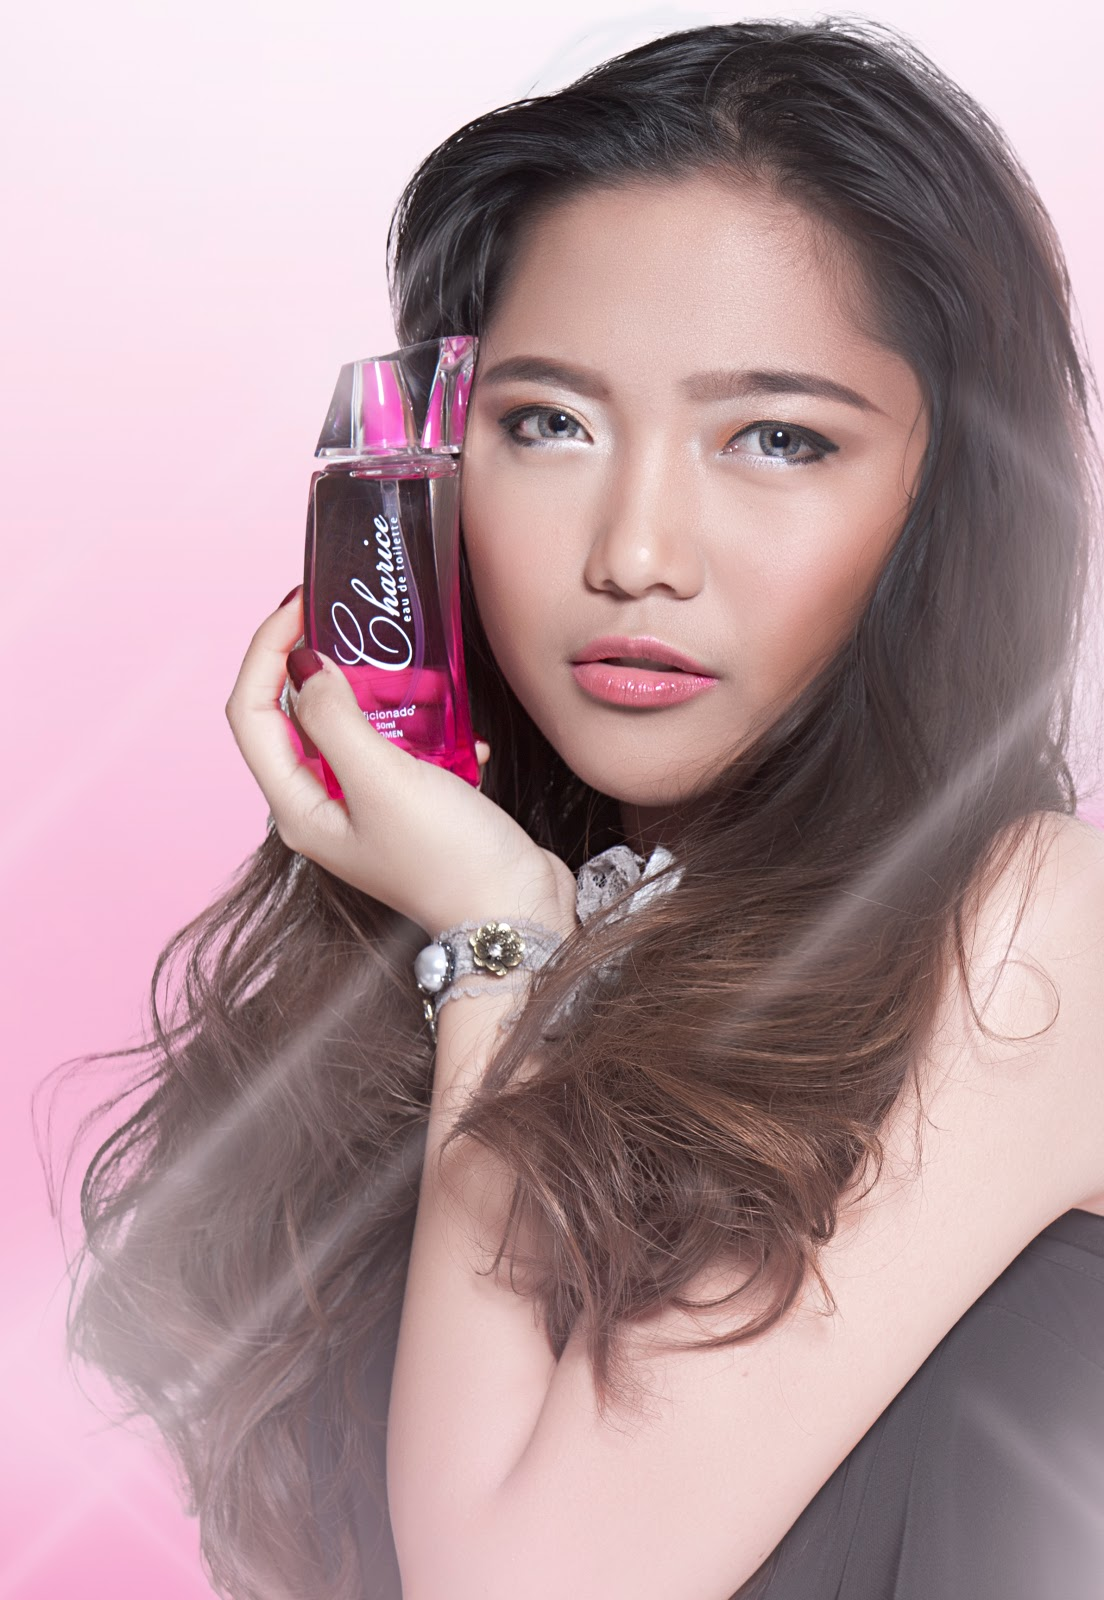 Charice endorsements